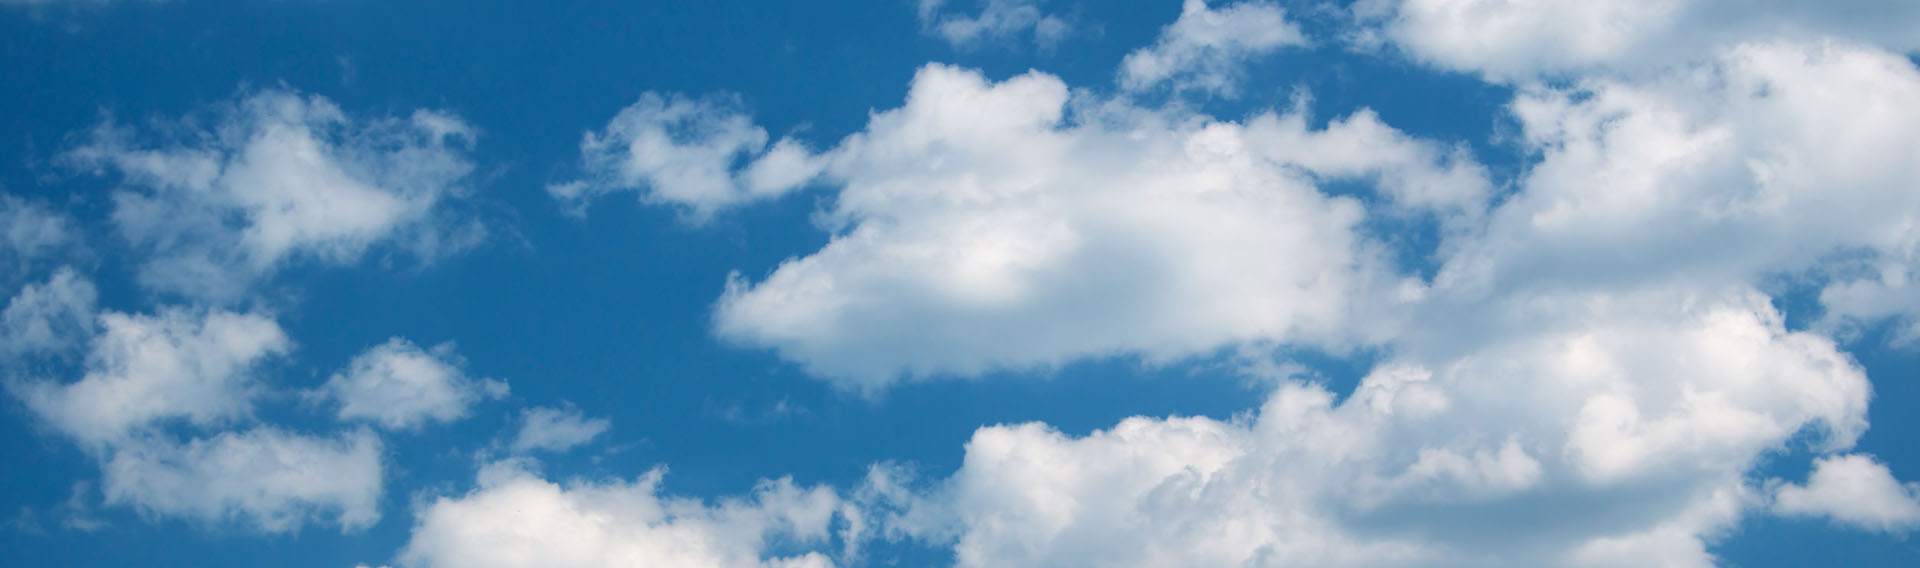 44098467 – white clouds on the blue sky on sunny day